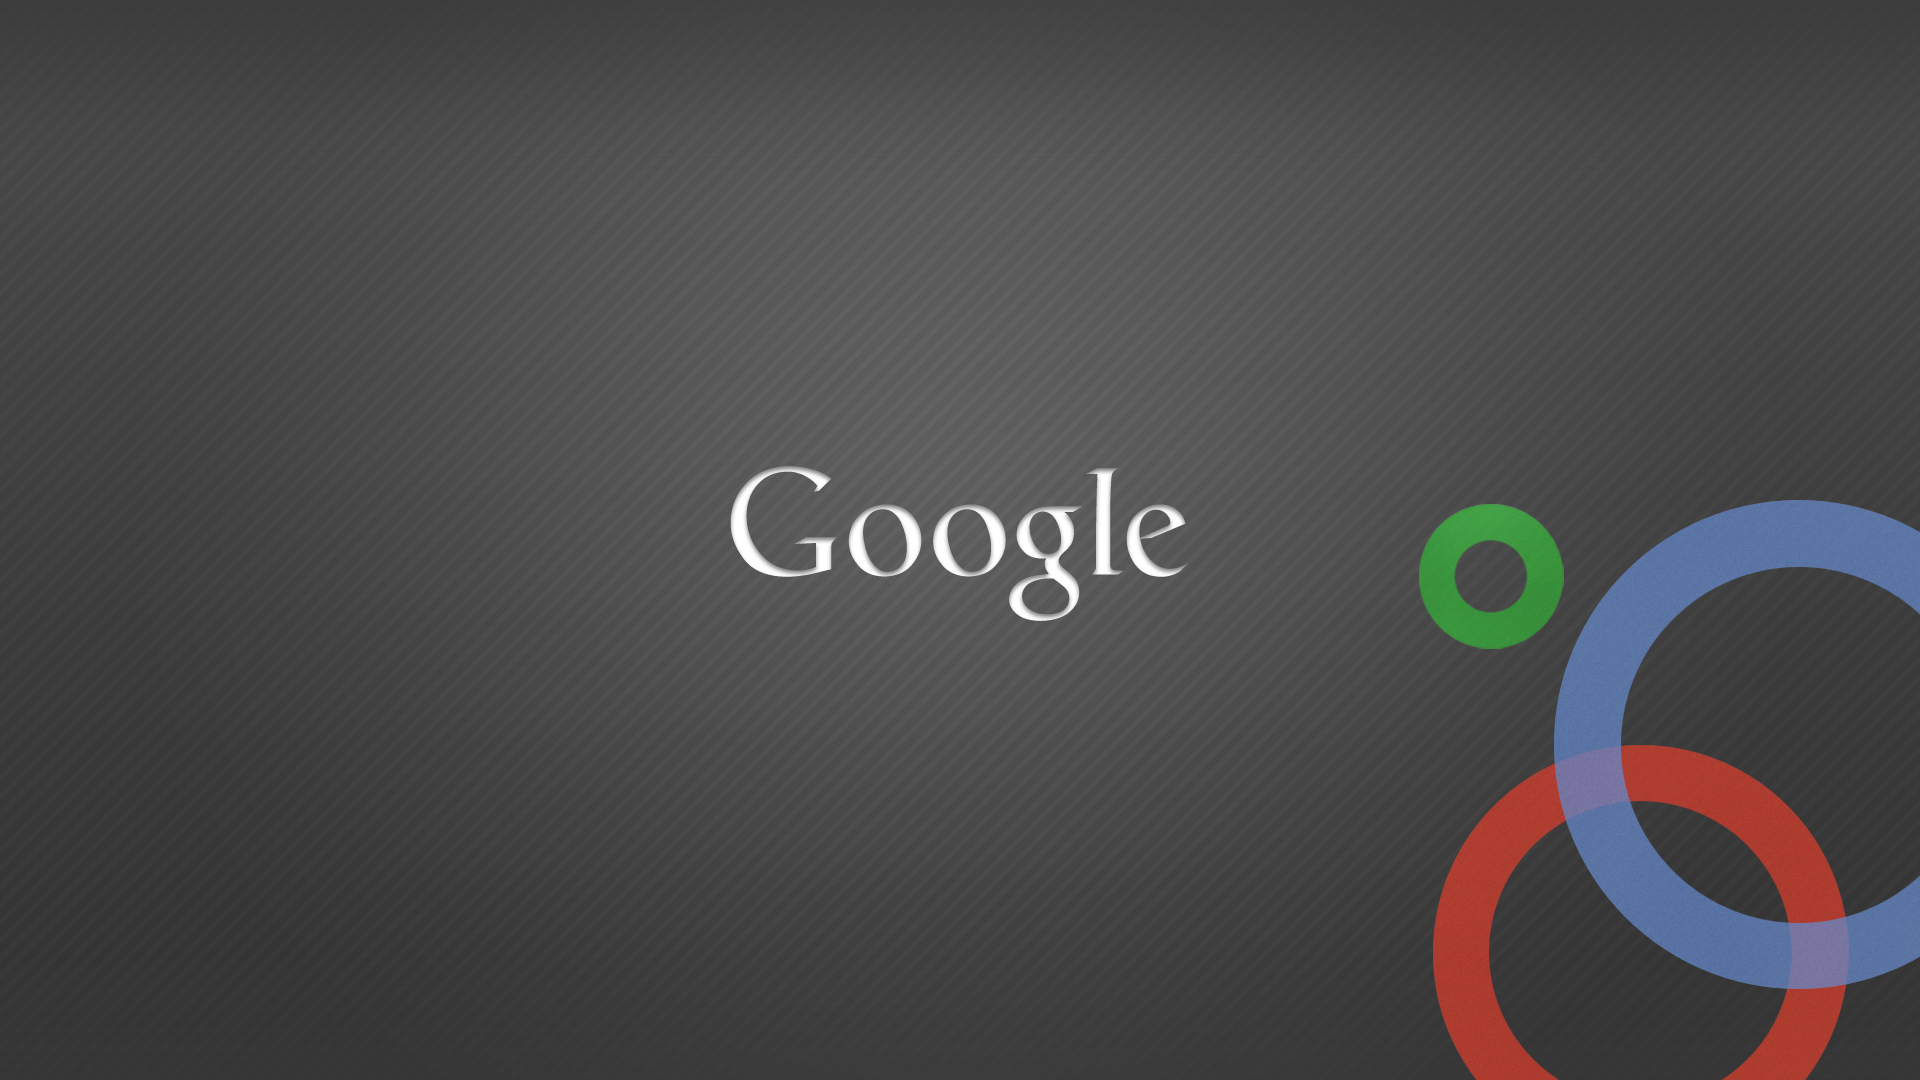 Google Theme Wallpapers , HD Wallpaper Downloads 1920x1080